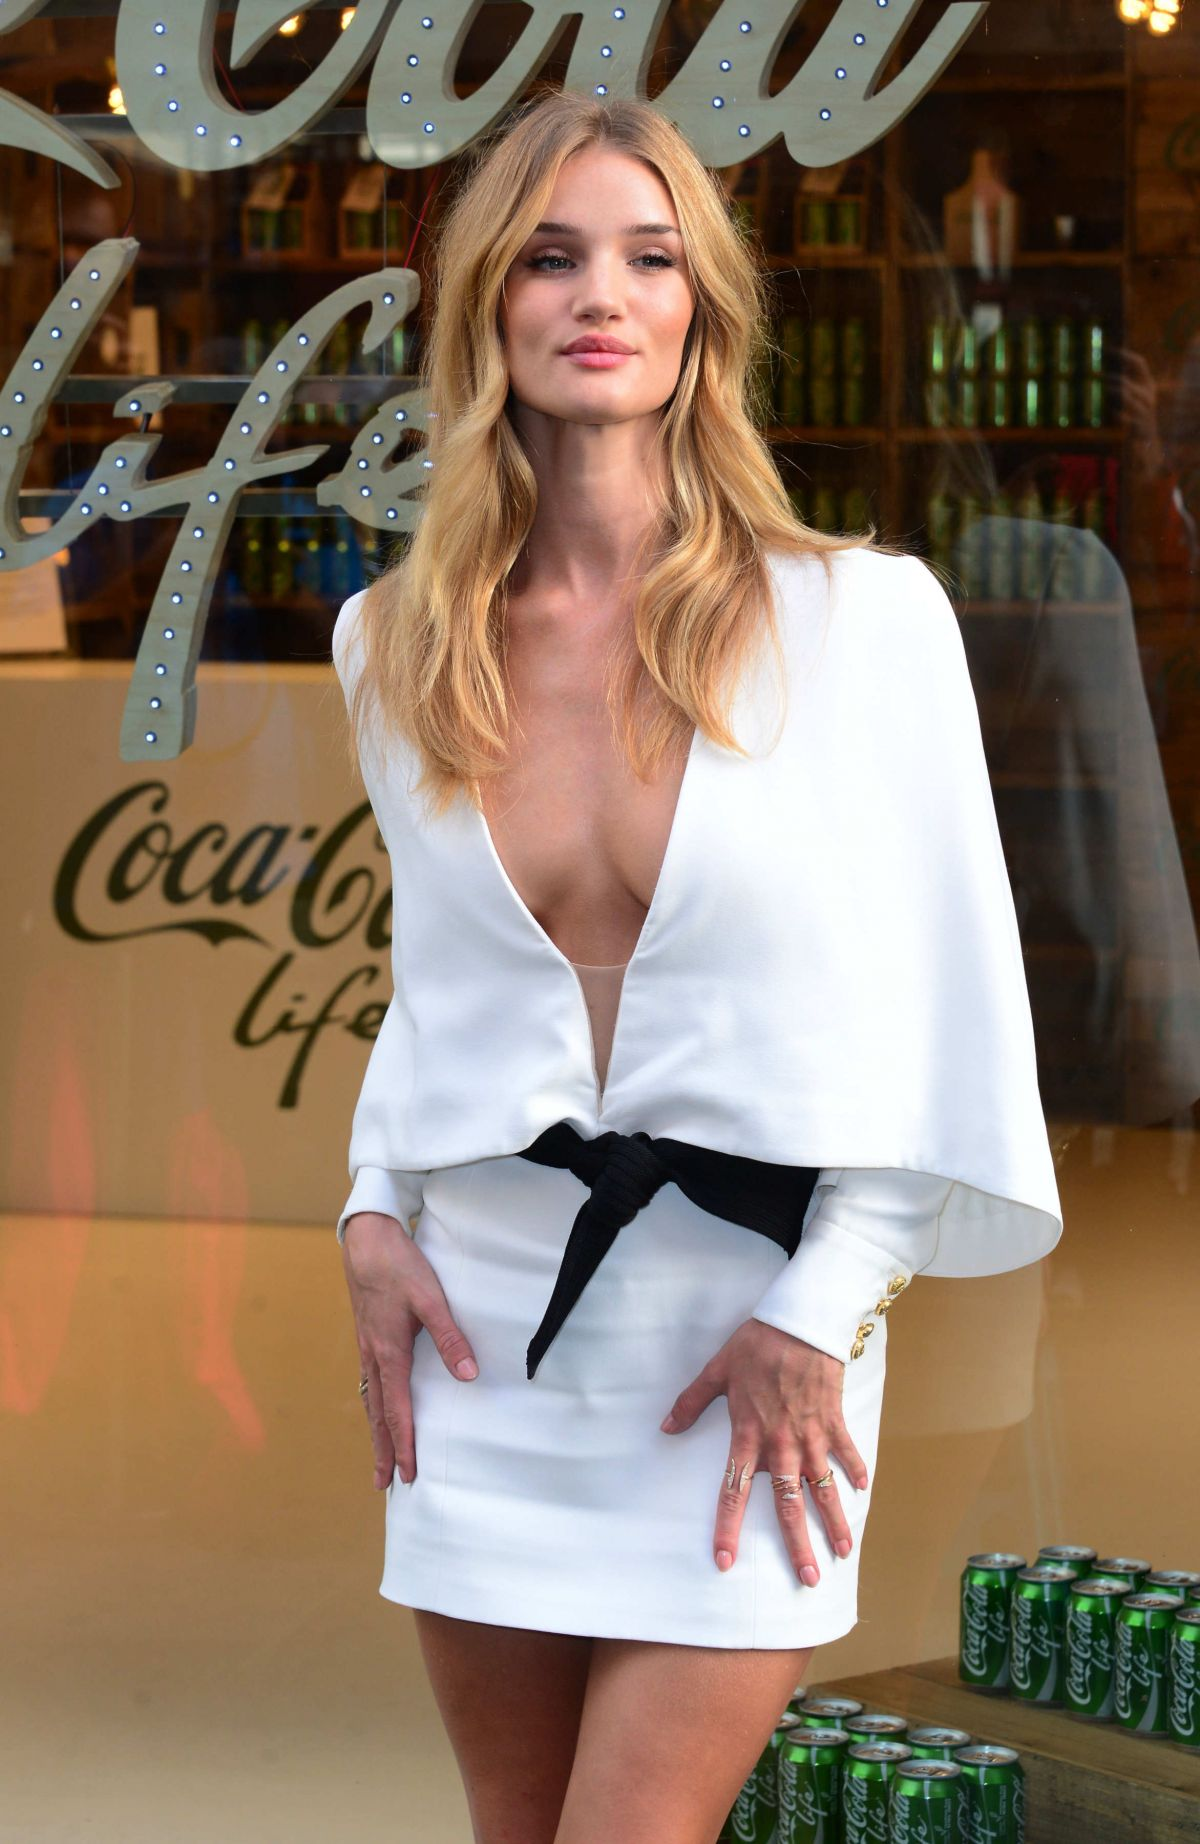 Rosie Huntington-Whiteley Archives - Page 22 of 29 - HawtCelebs ... Rosie Huntington Whiteley